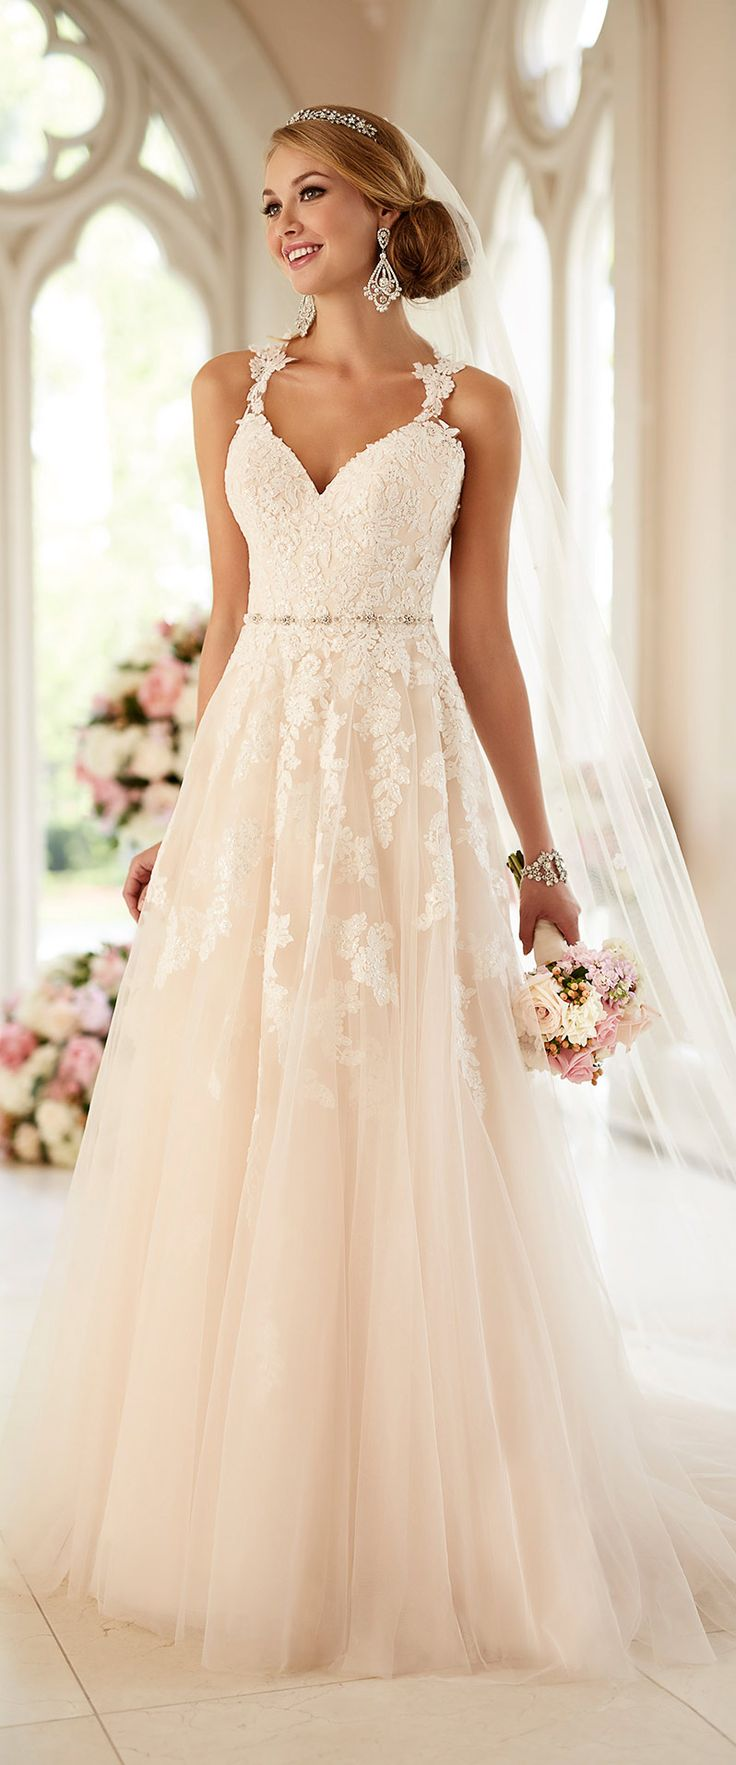 Stella York lace wedding dress with straps